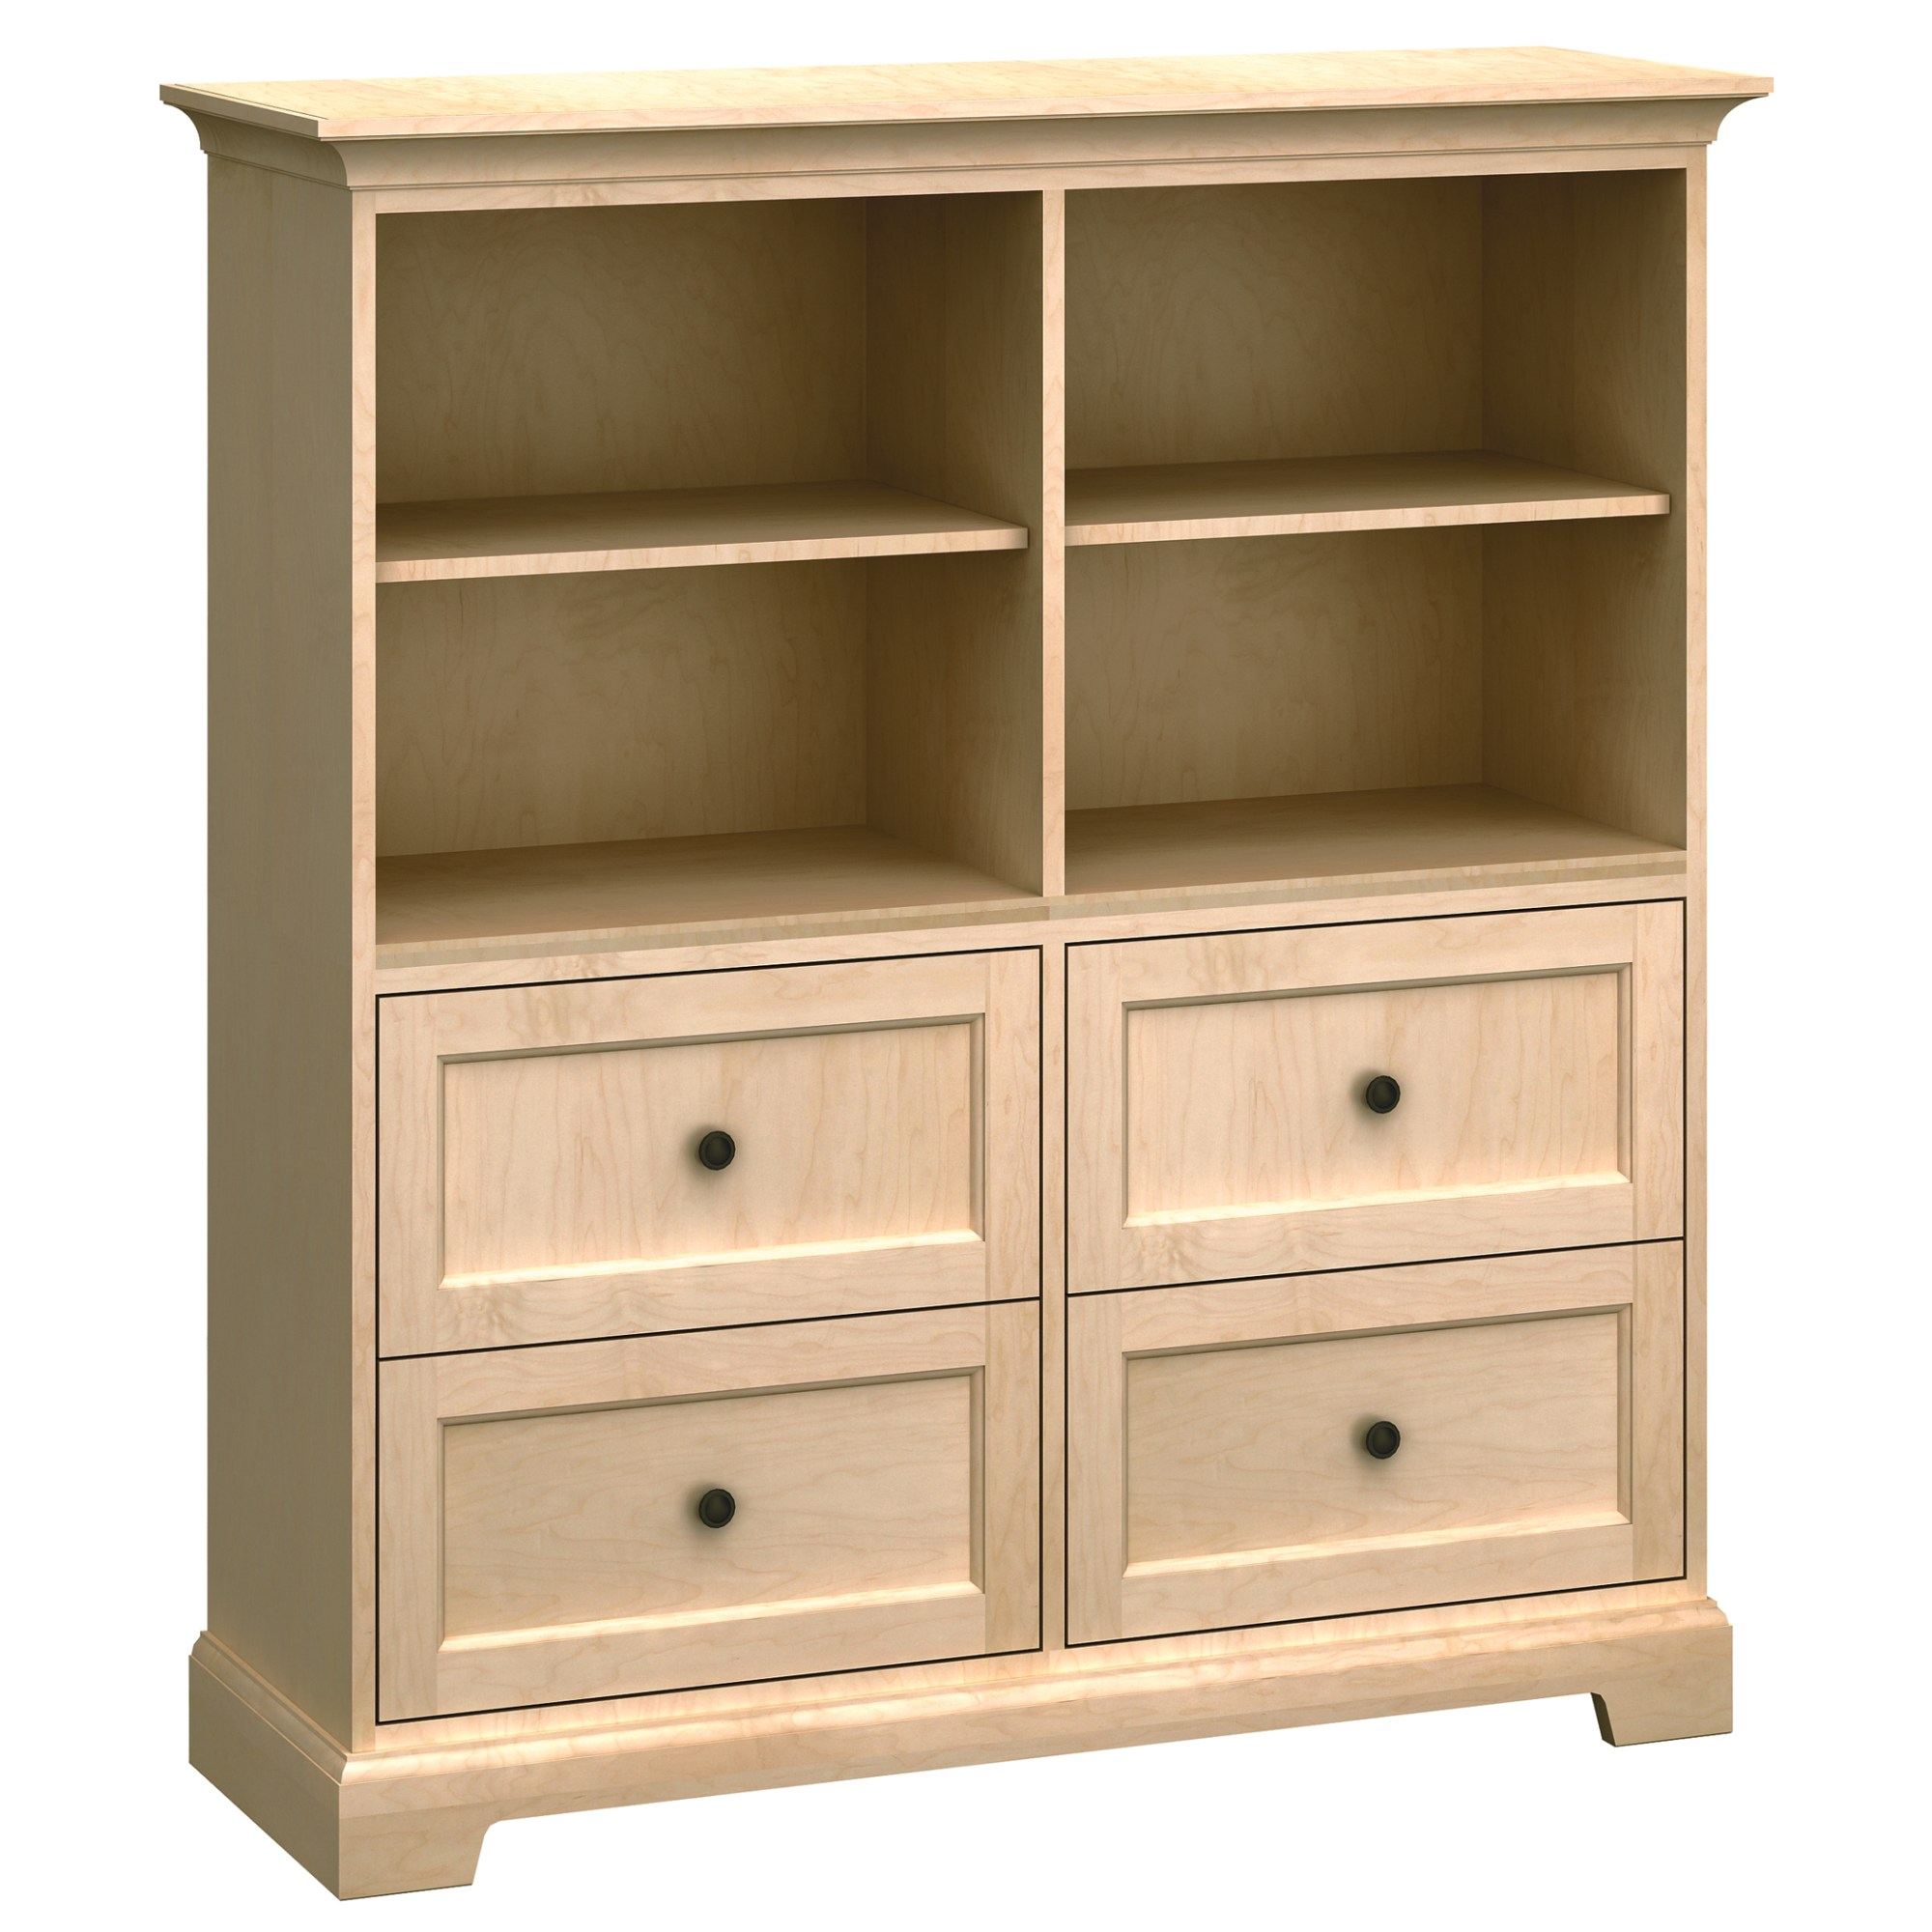 Image for HS50A Custom Home Storage Cabinet from Howard Miller Official Website